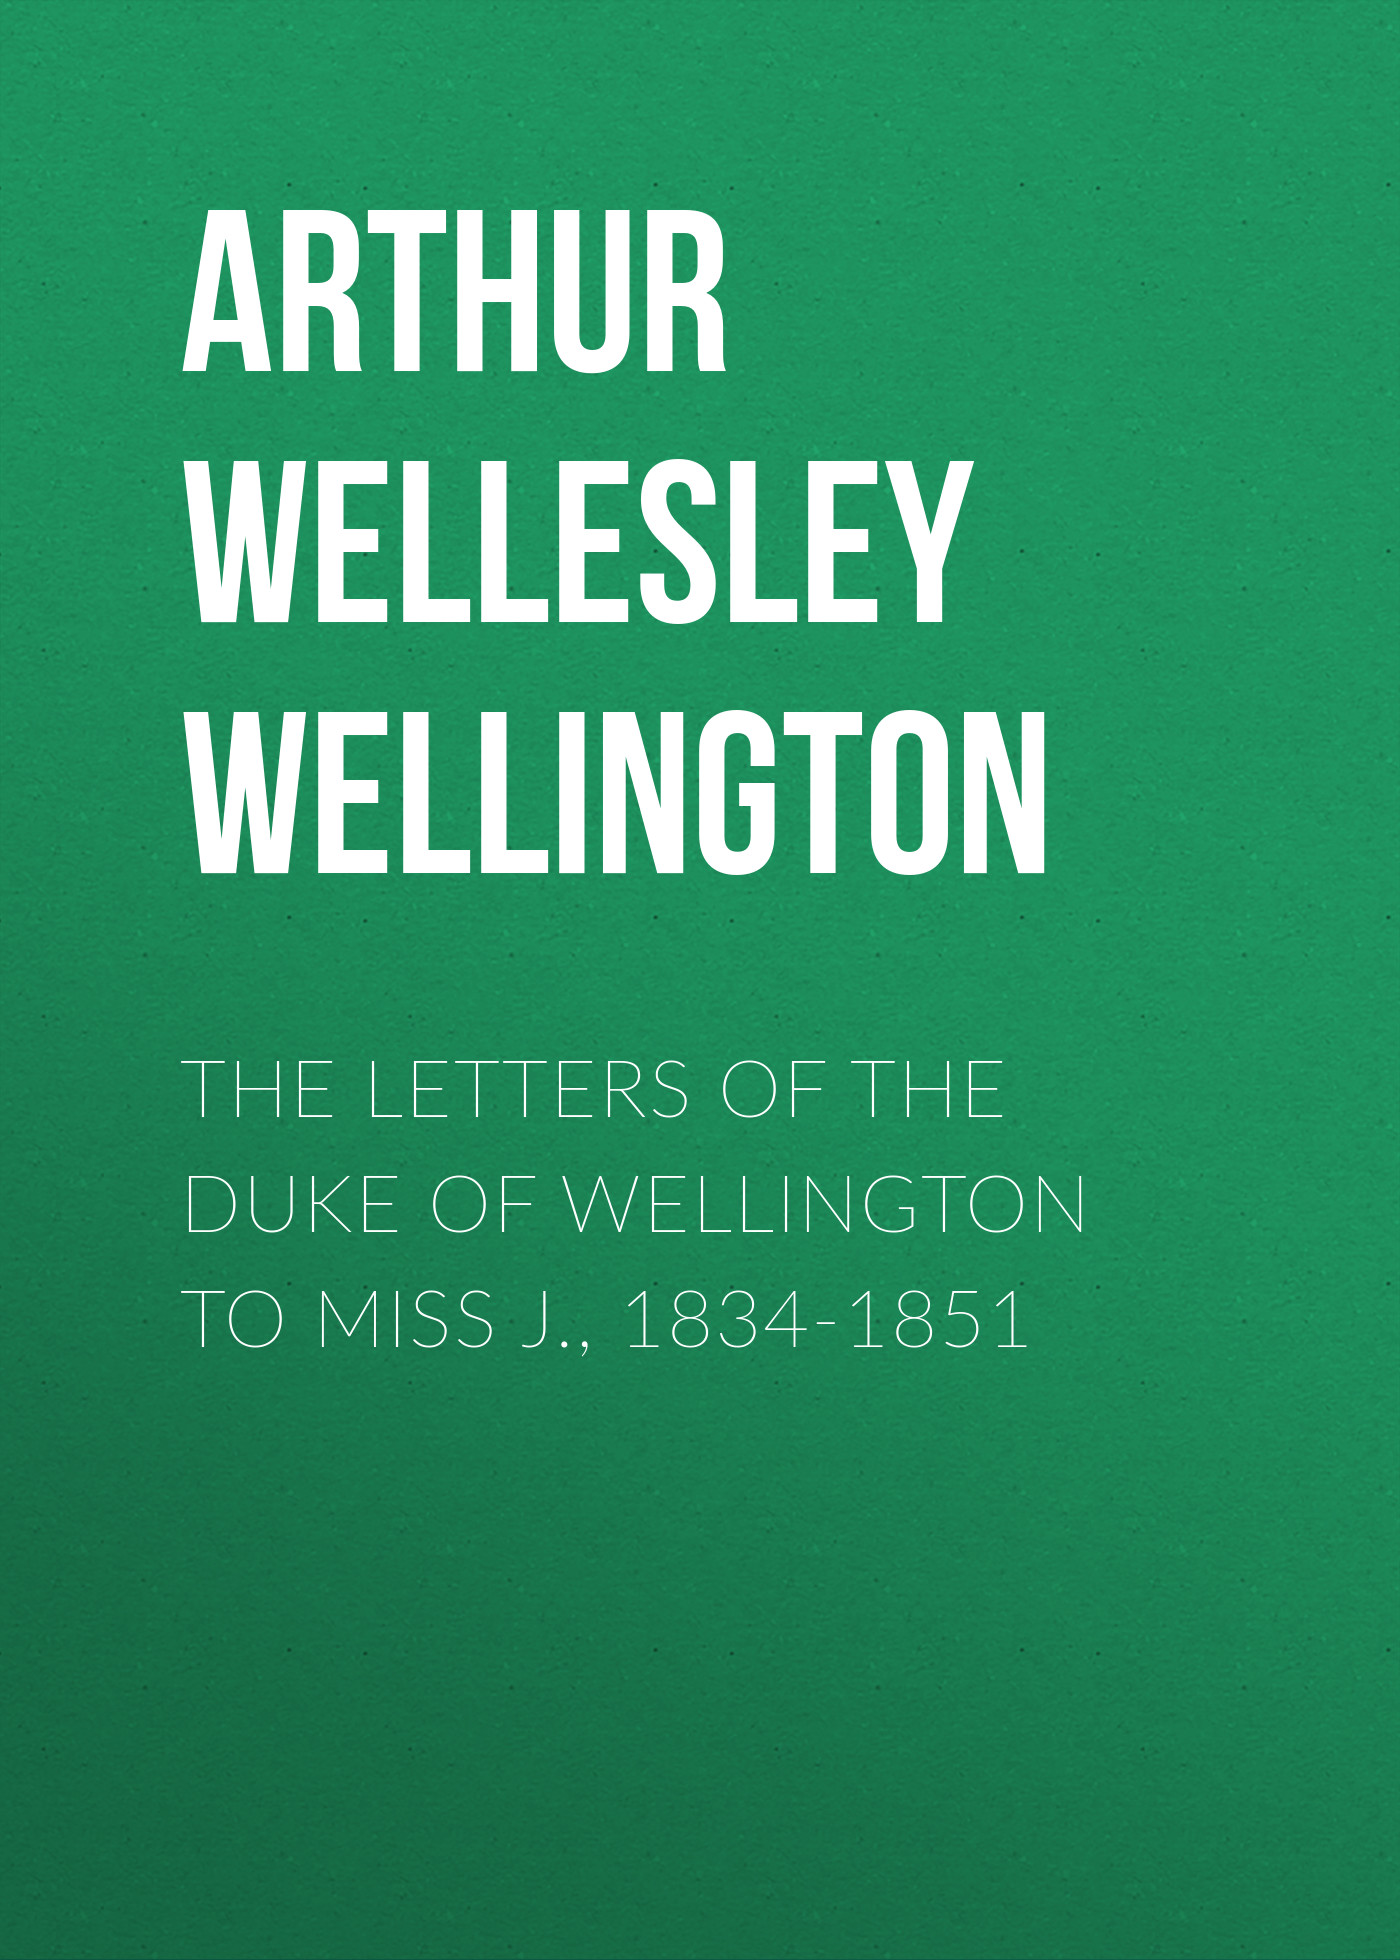 Arthur Wellesley Wellington The Letters of the Duke of Wellington to Miss J., 1834-1851 the duke